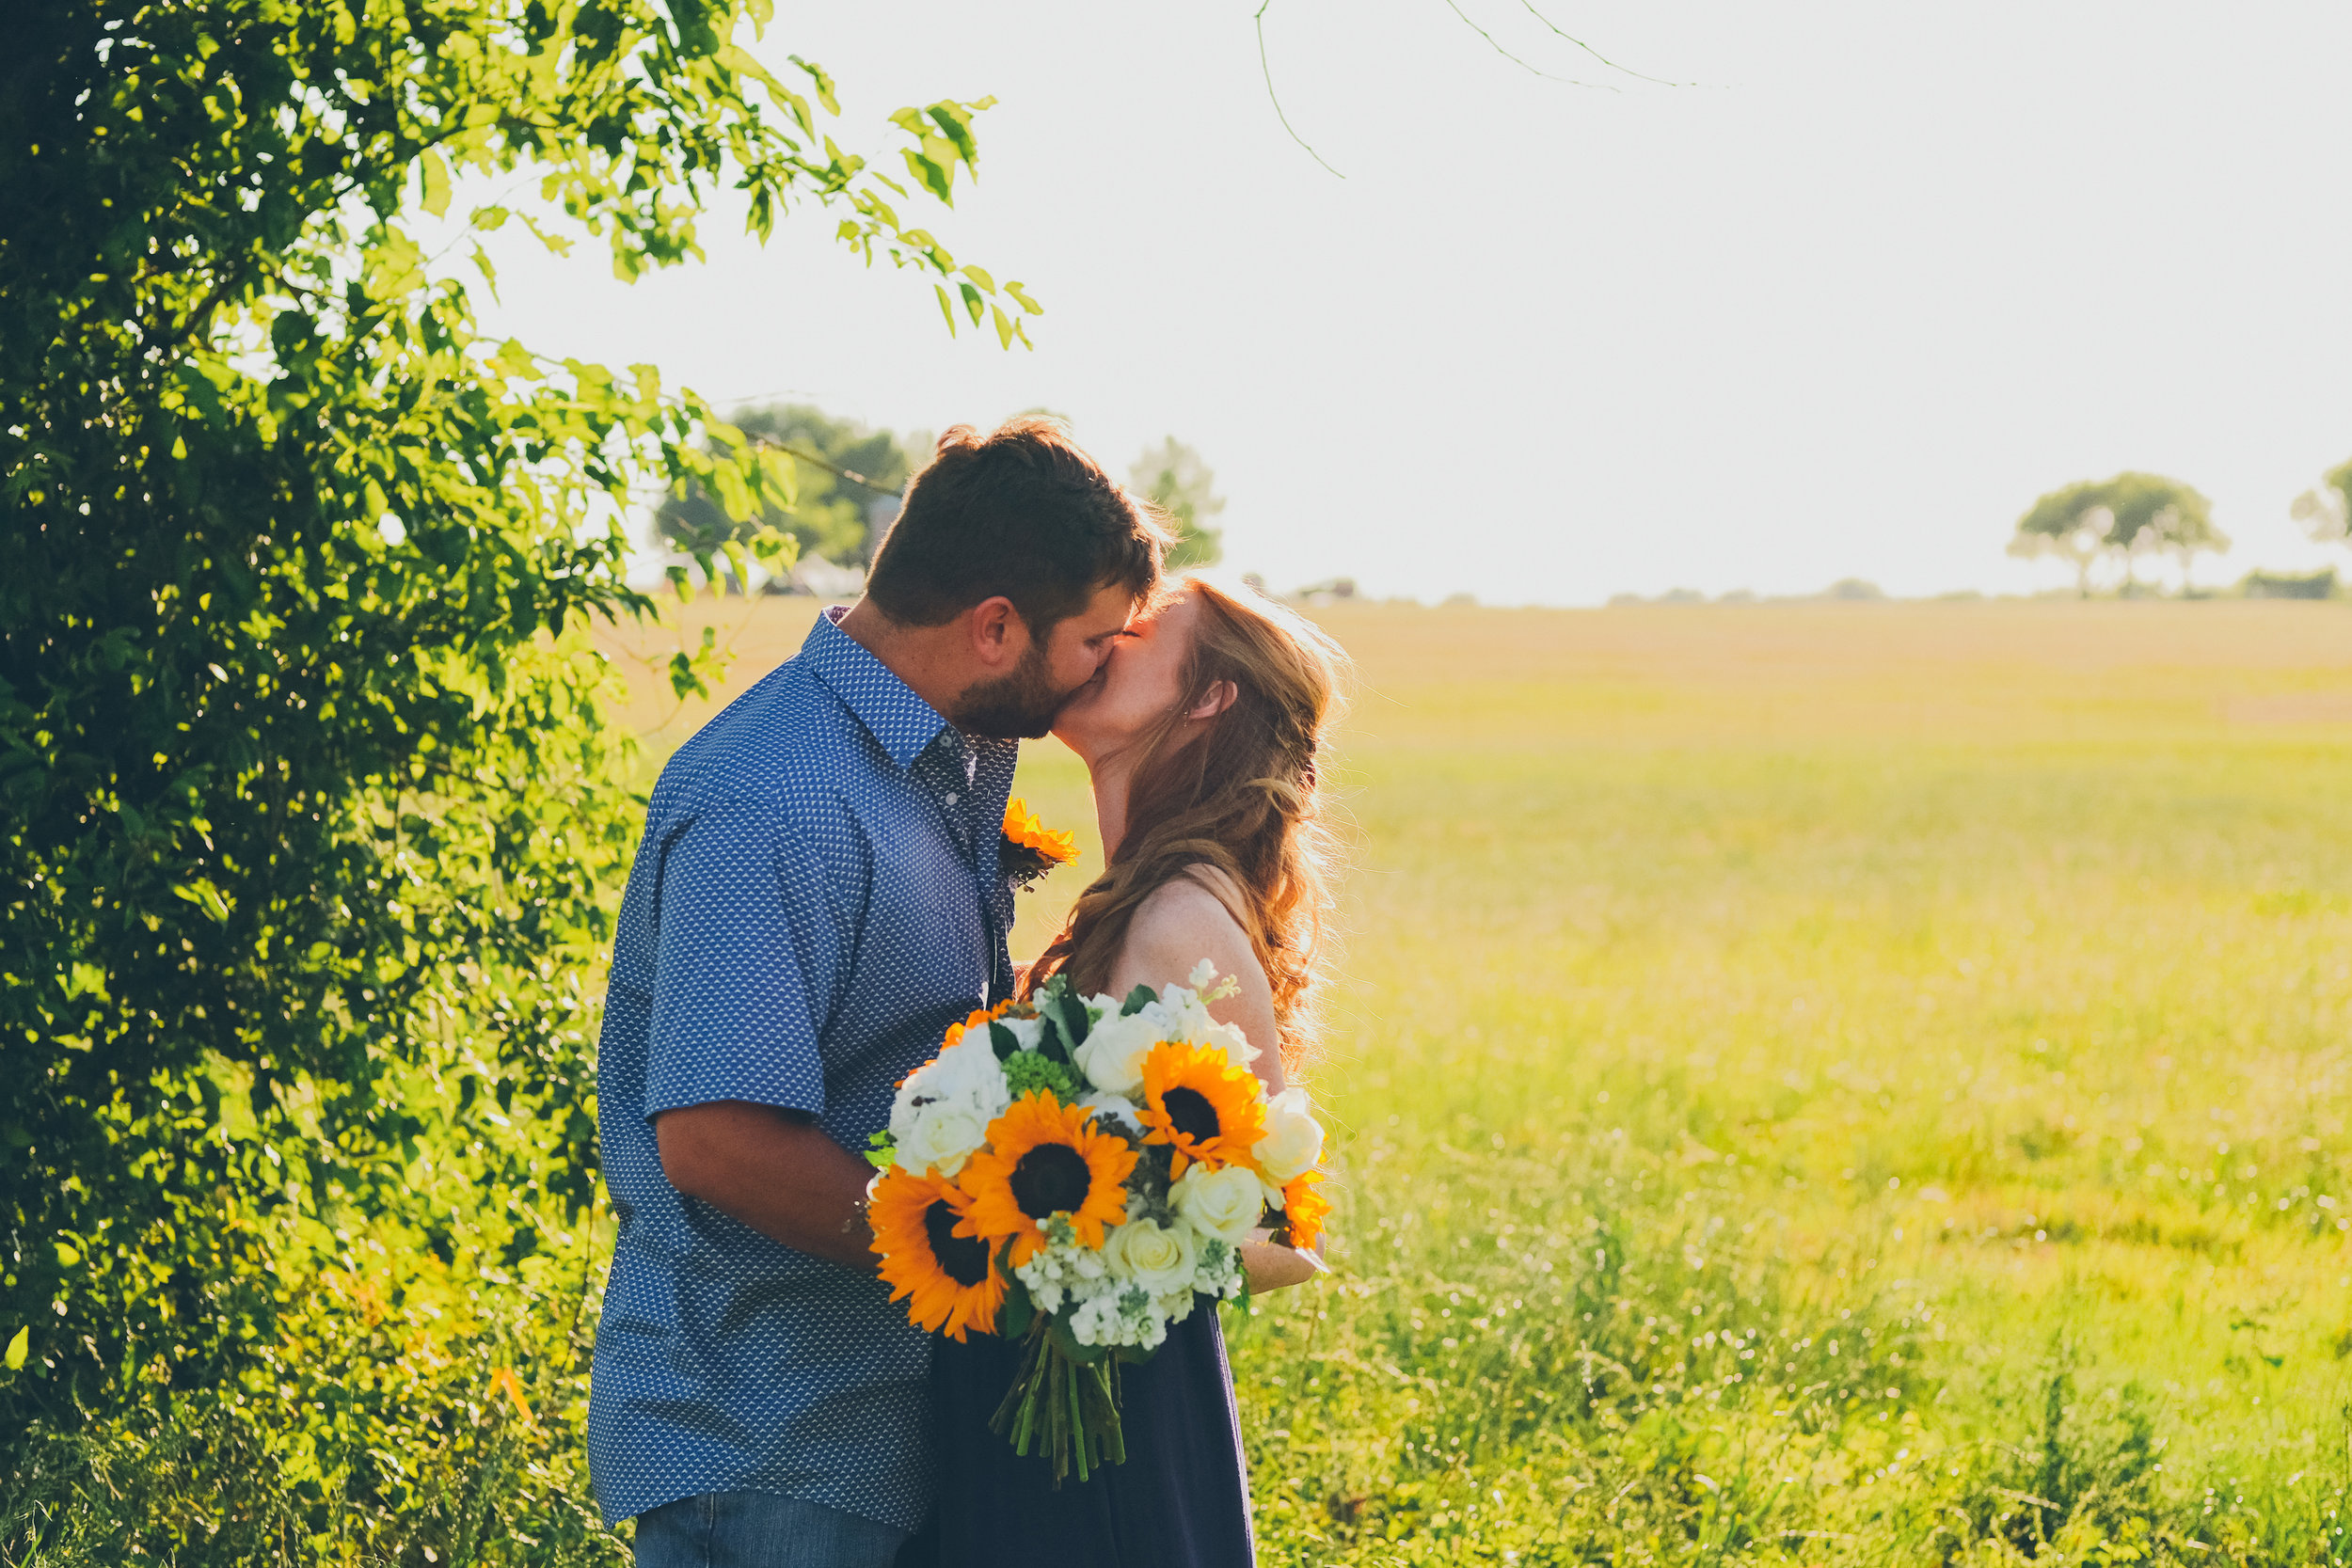 Color photo of bride and groom kissing in a field.